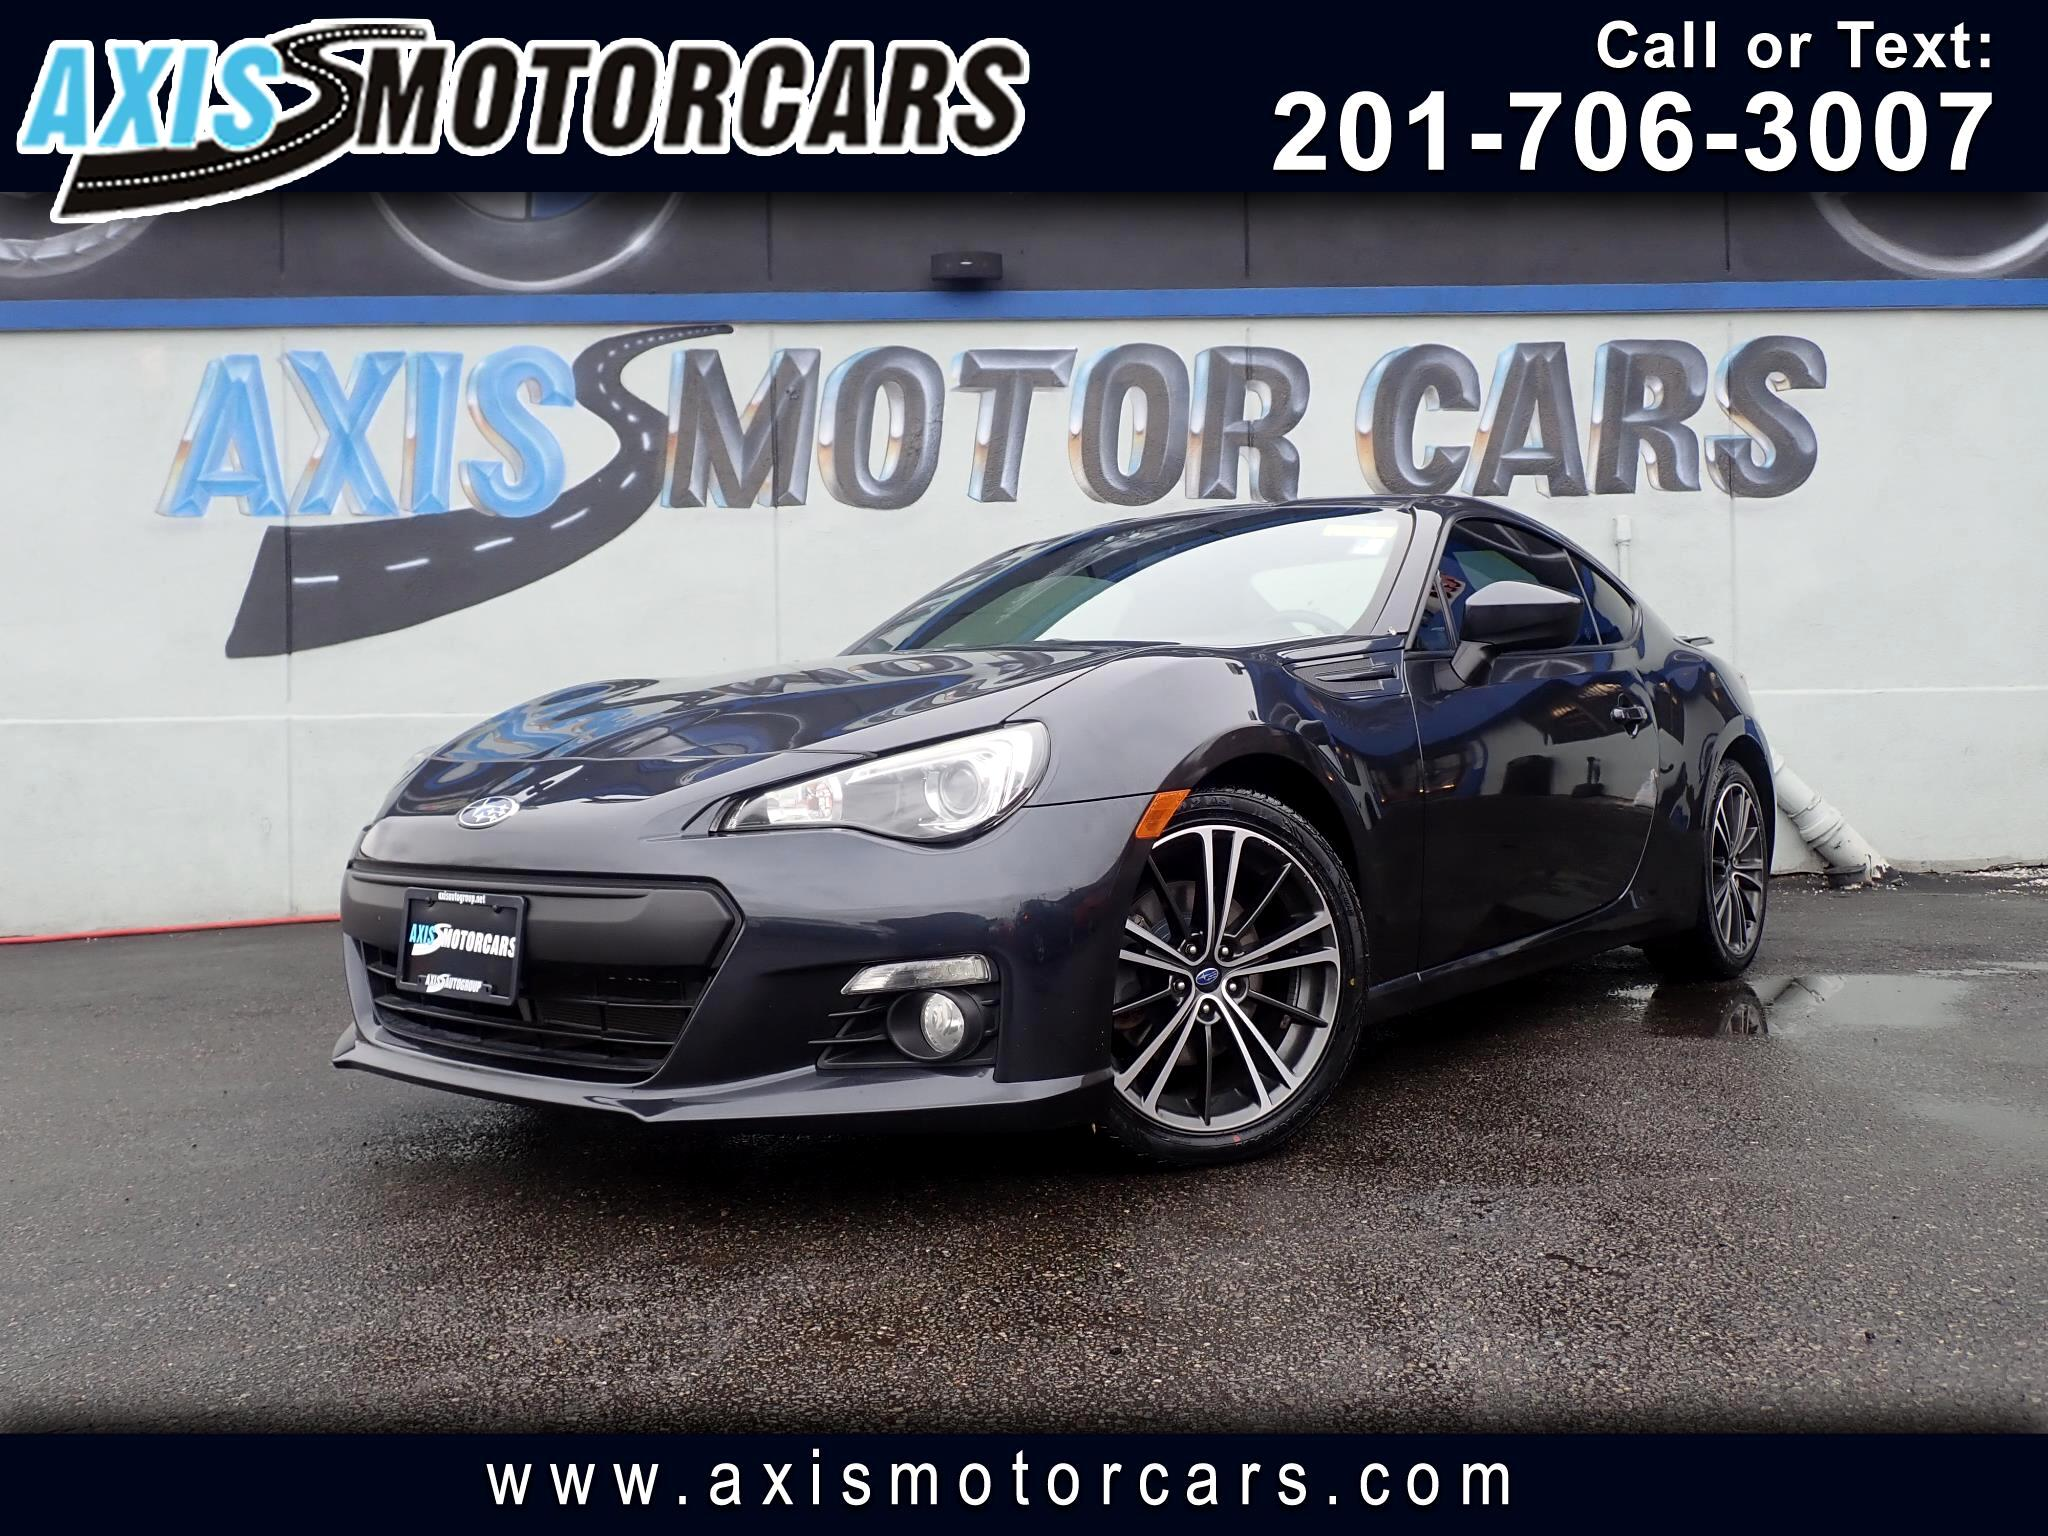 2013 Subaru BRZ 2.0 Limited Cpe w/Navigation Leather